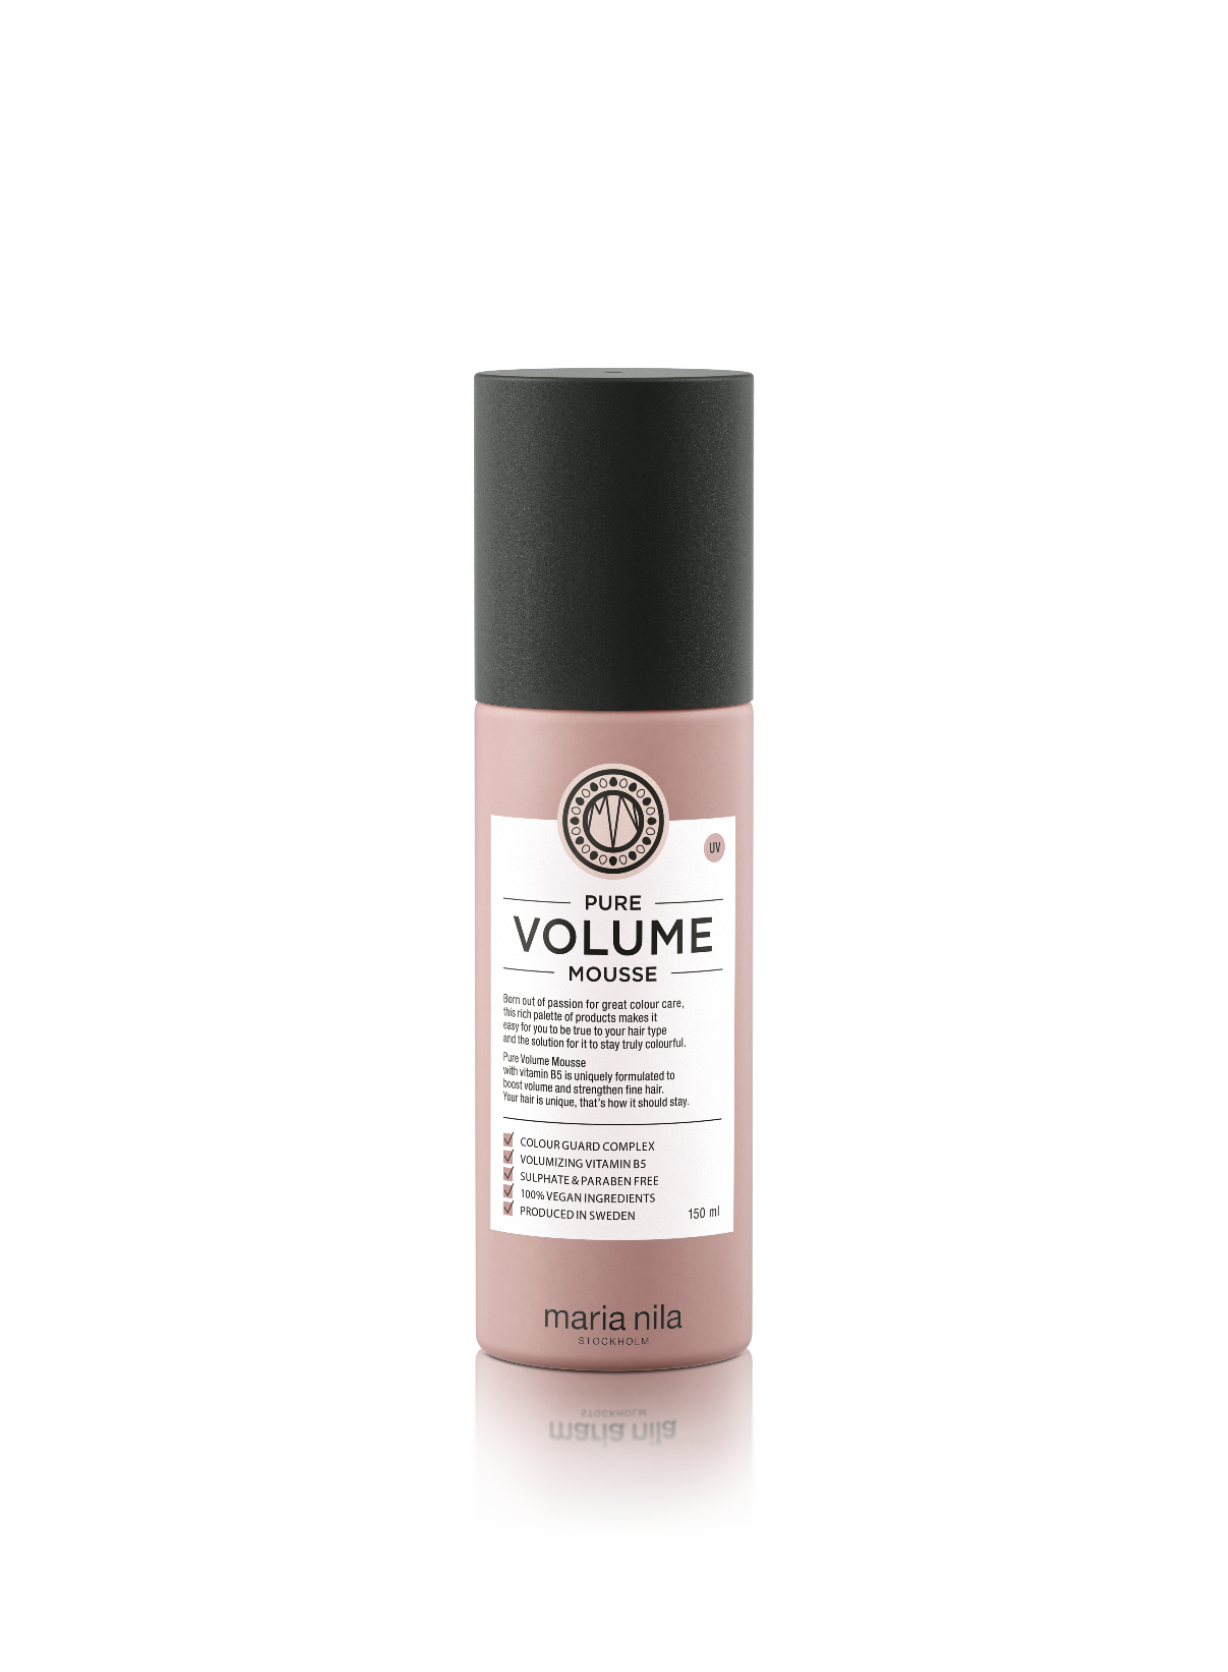 Pure Volume Mousse